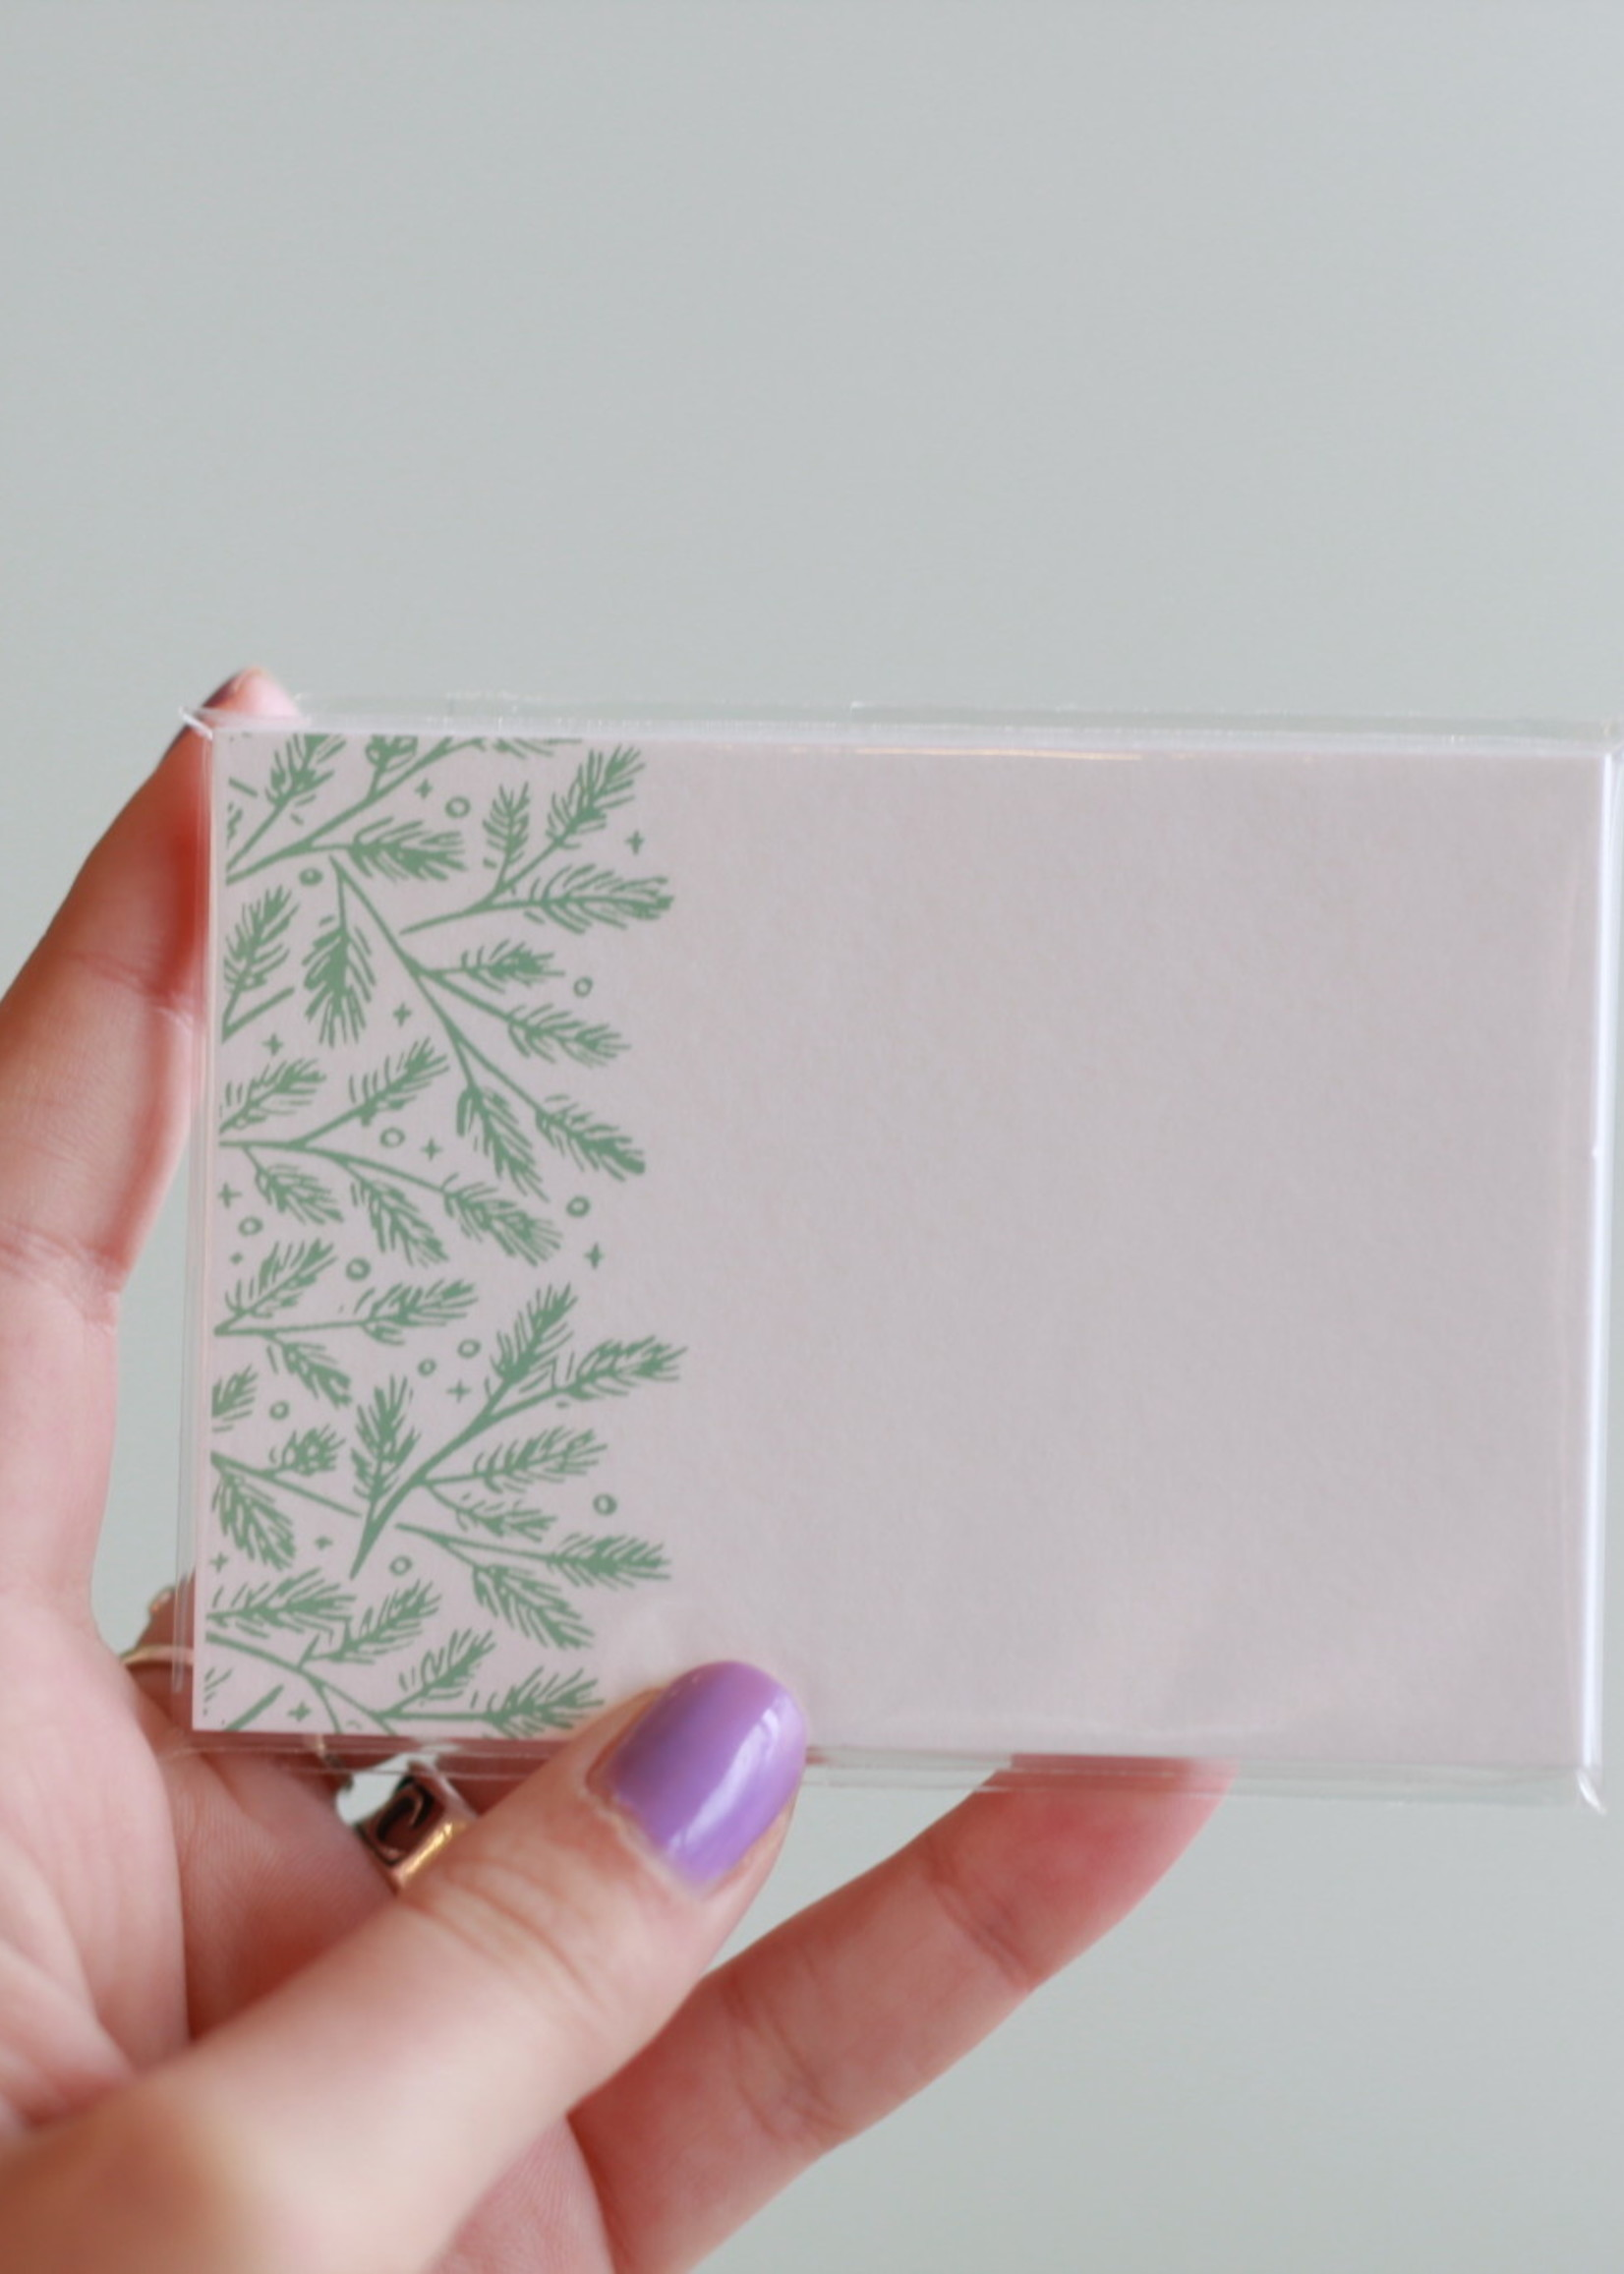 Frog and Toad Pine Boughs Mini Card Set (10)